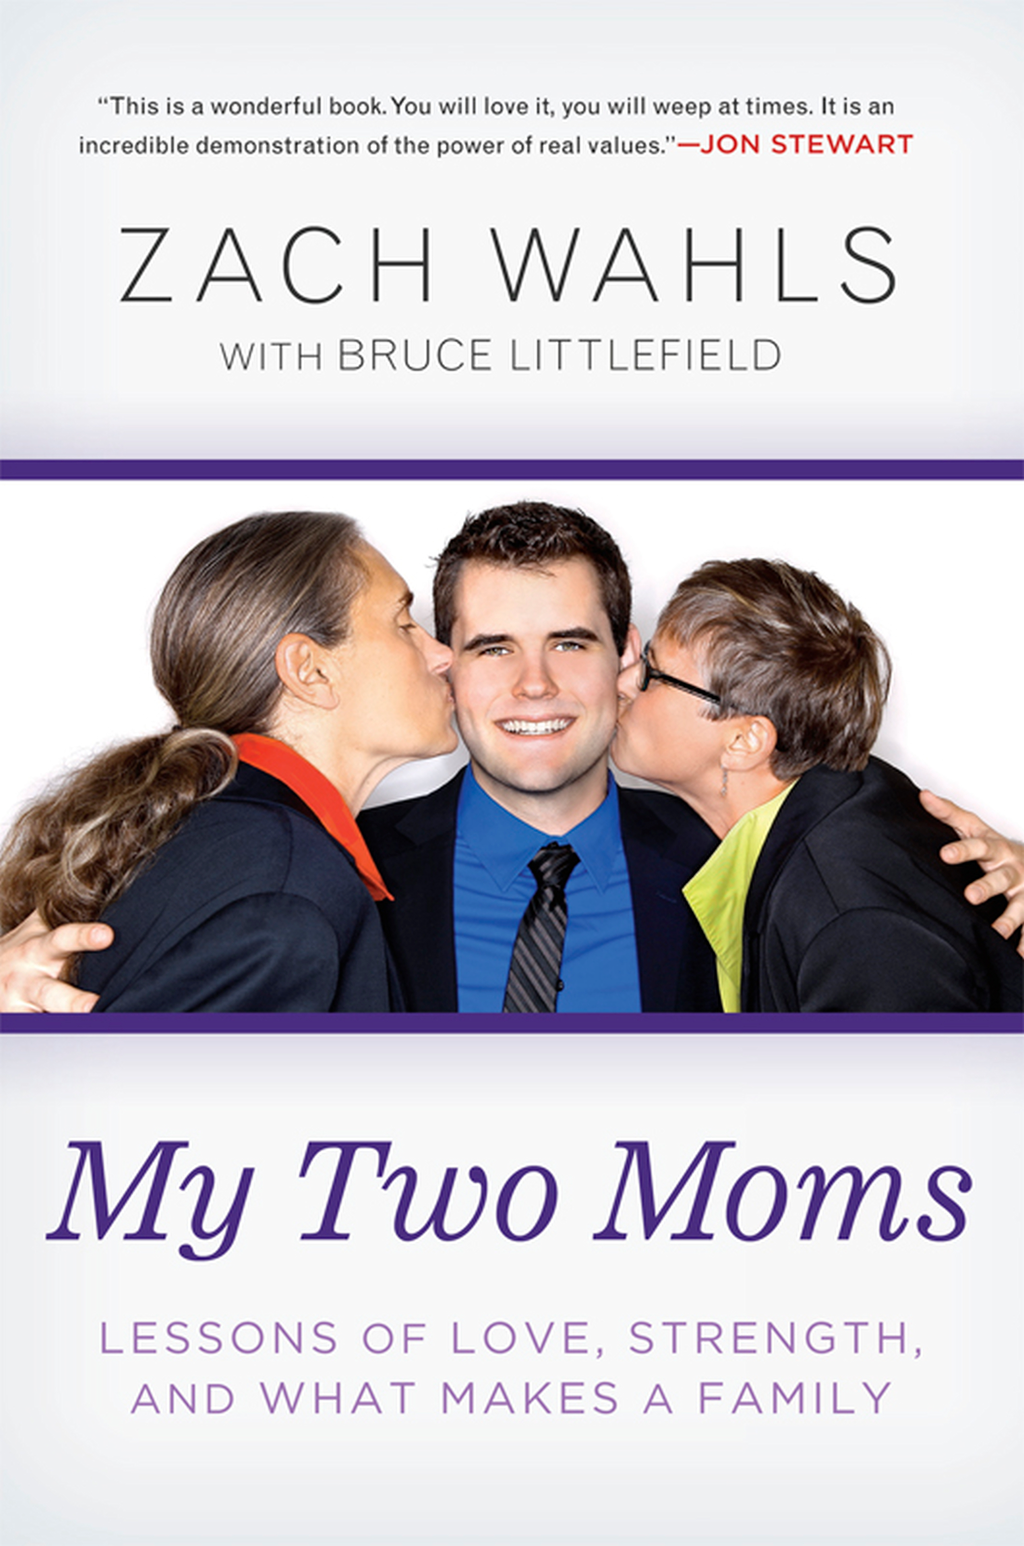 My Two Moms Lessons of Love,  Strength,  and What Makes a Family